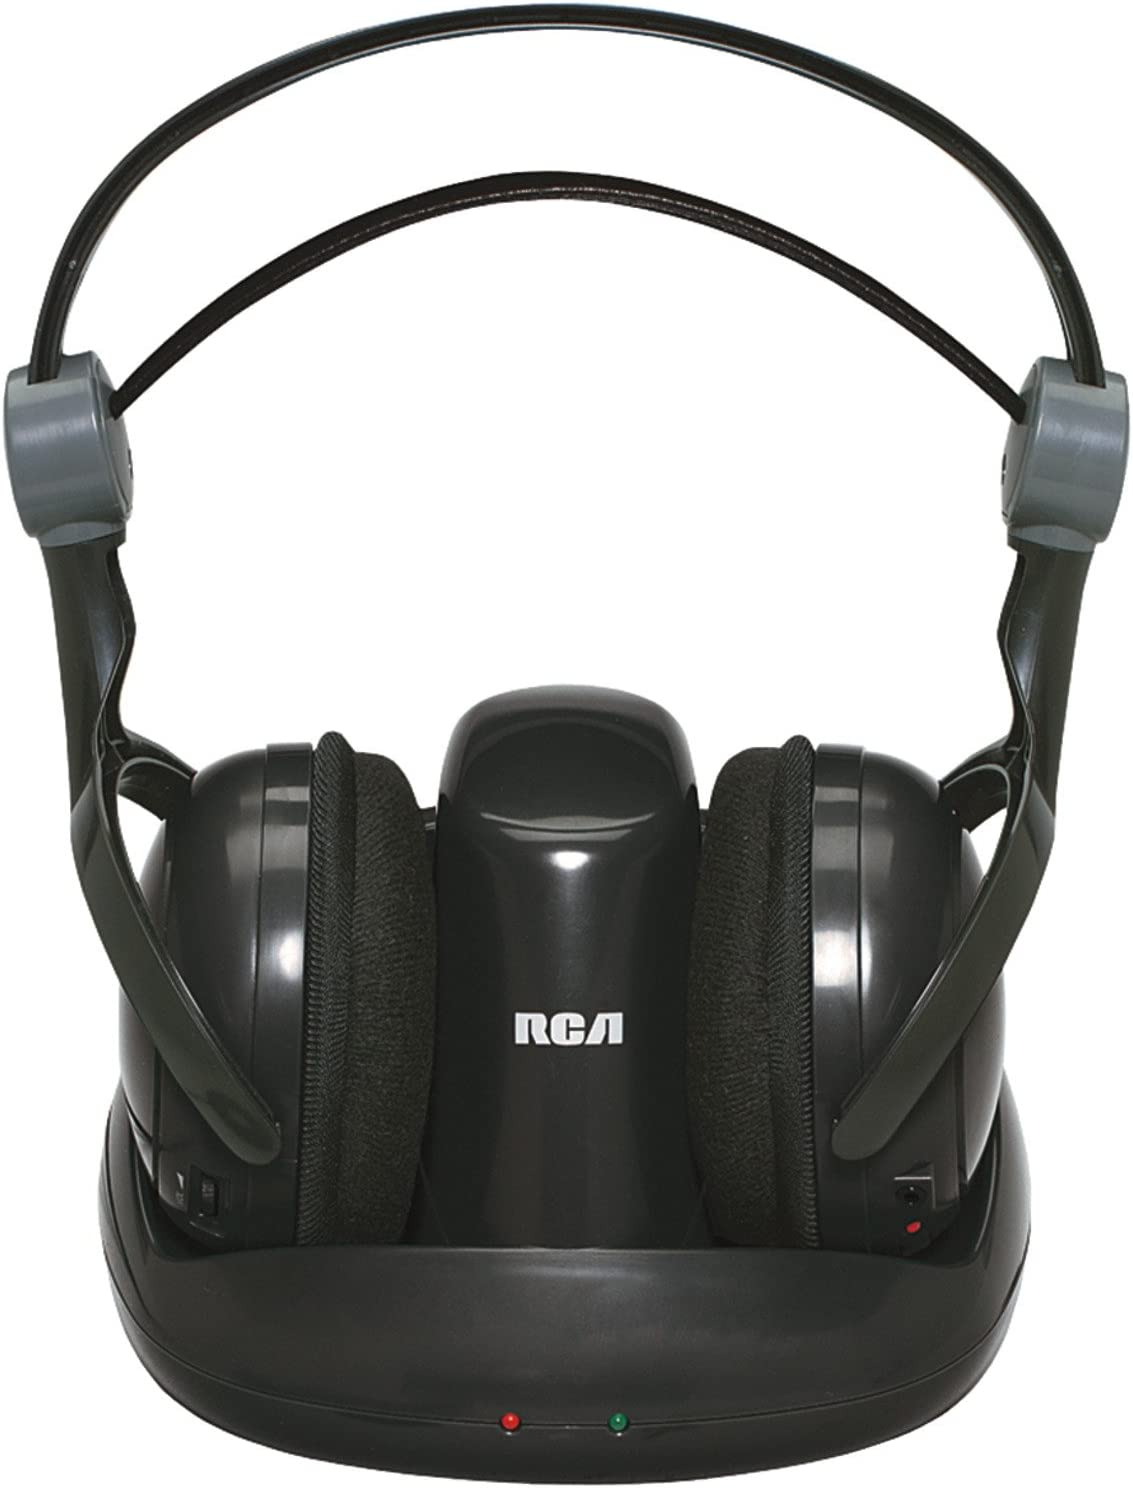 Audiovox RCA Black Wireless 900MHz Full-Size Headphones